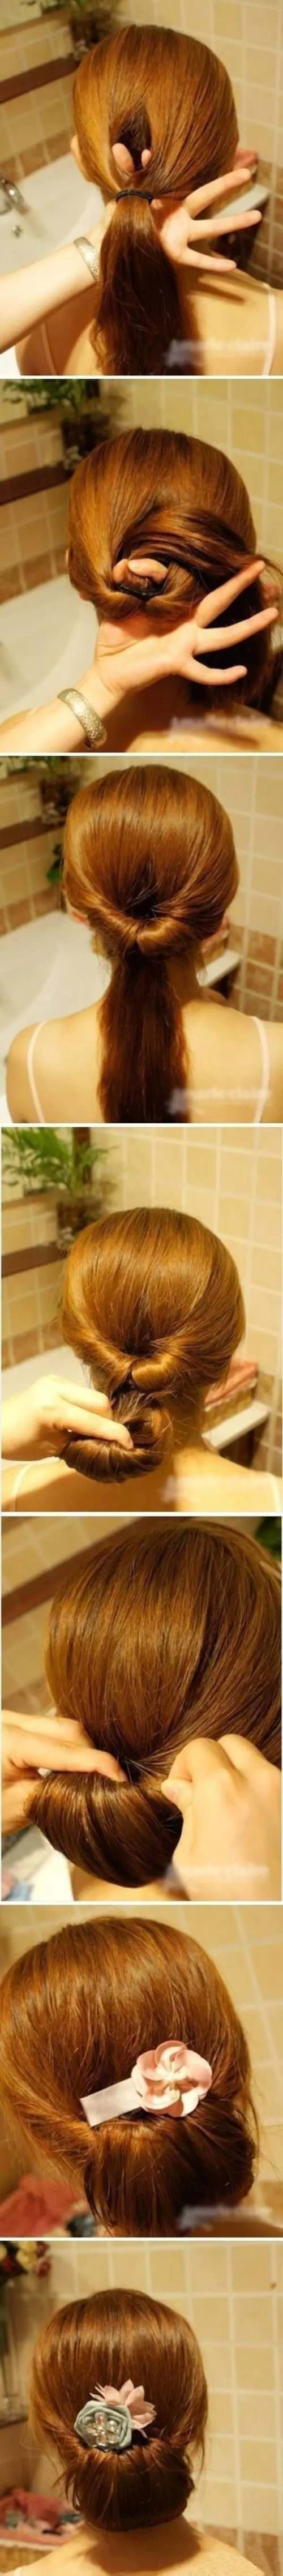 17 air hostess hairstyles you can do at home page 4 of 17